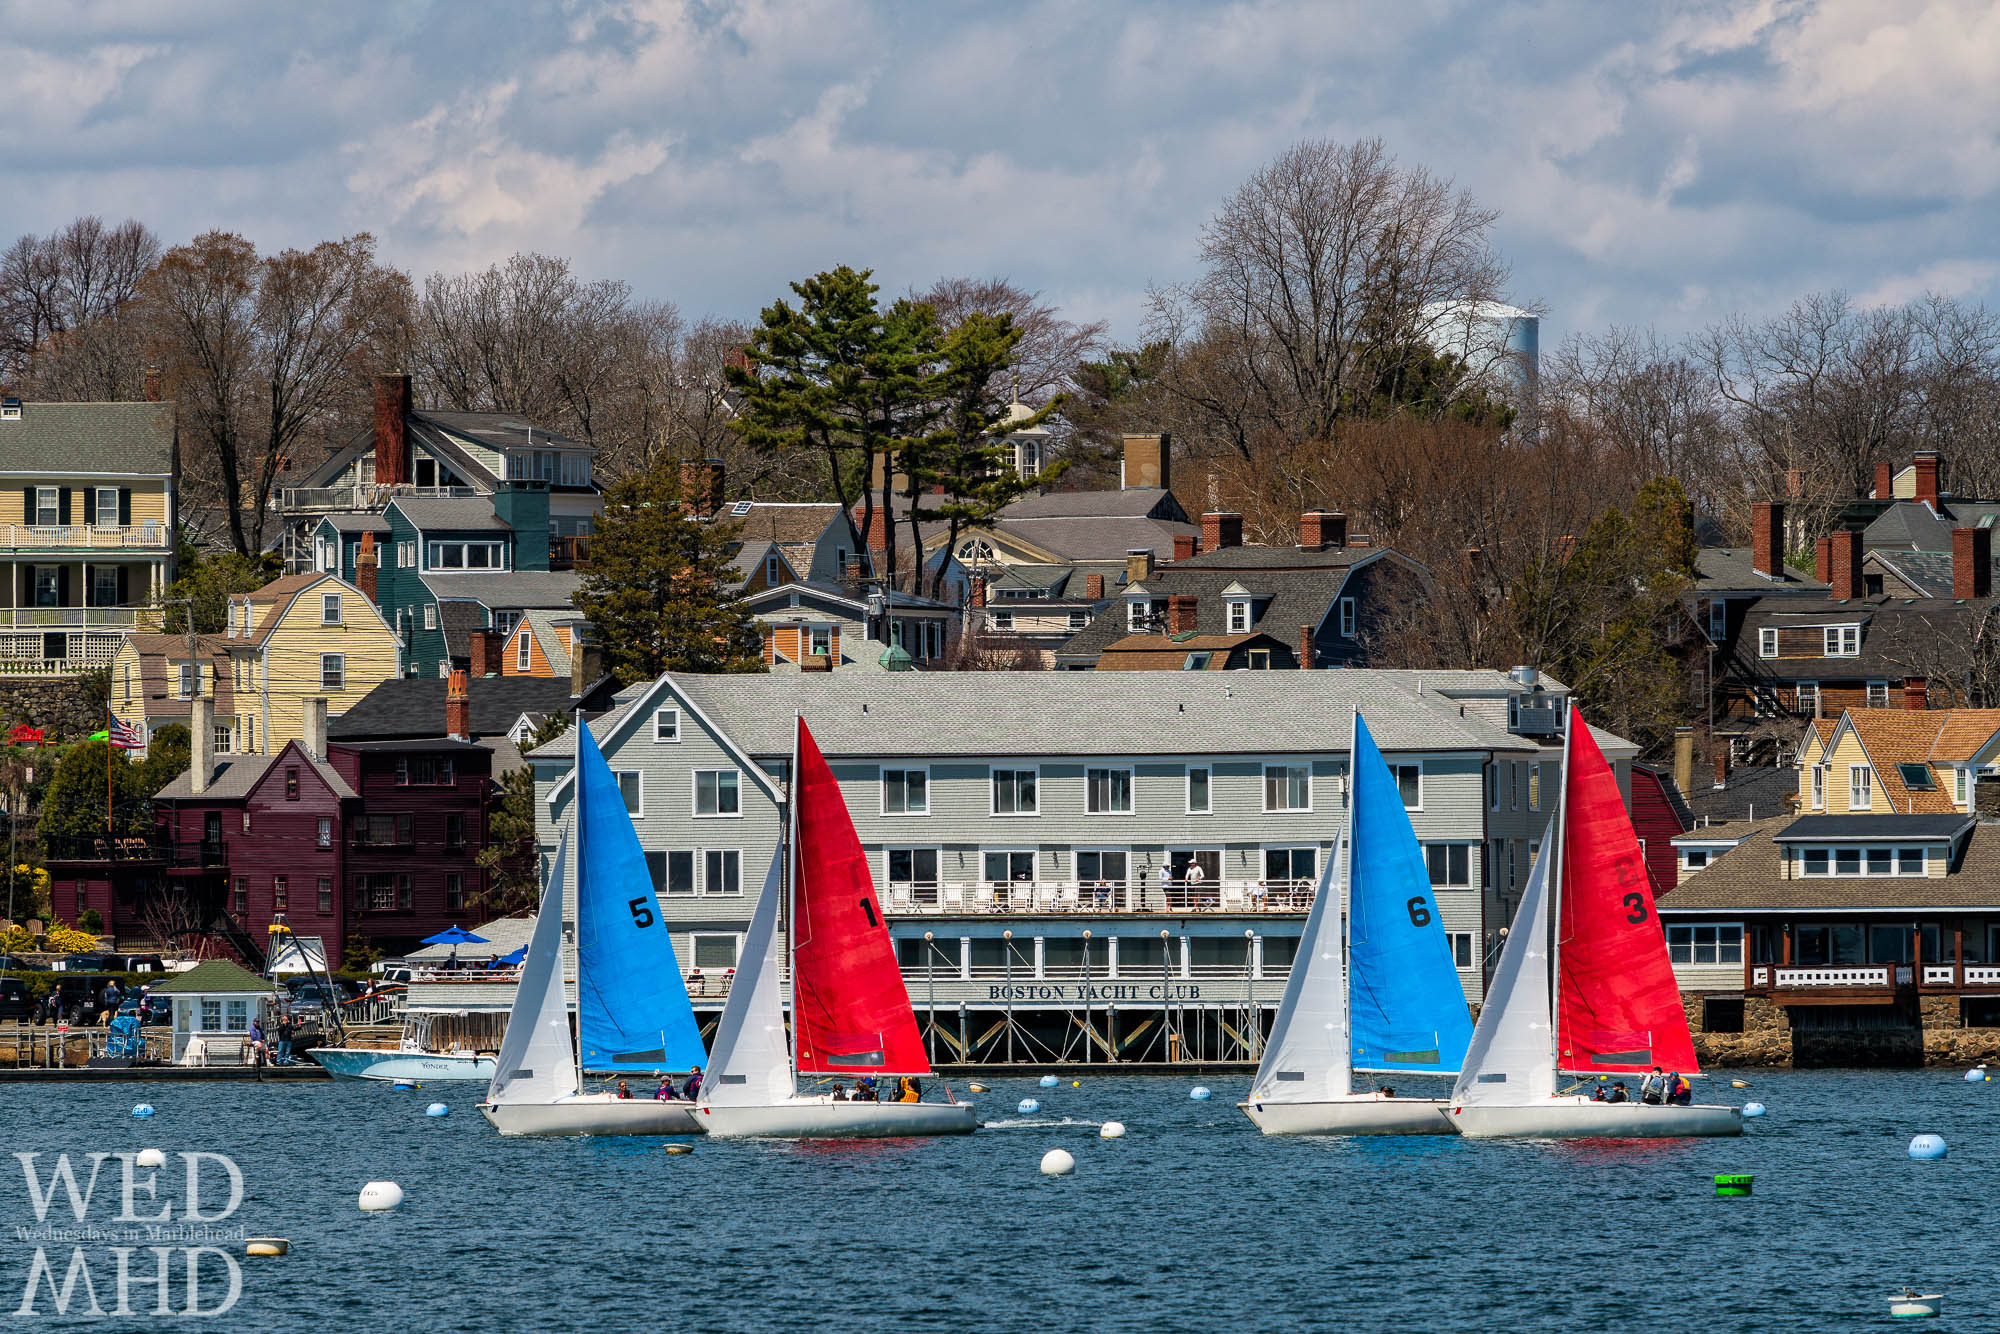 The Boston Yacht Club's Jackson Cup Race finishes today with racing inside Marblehead Harbor